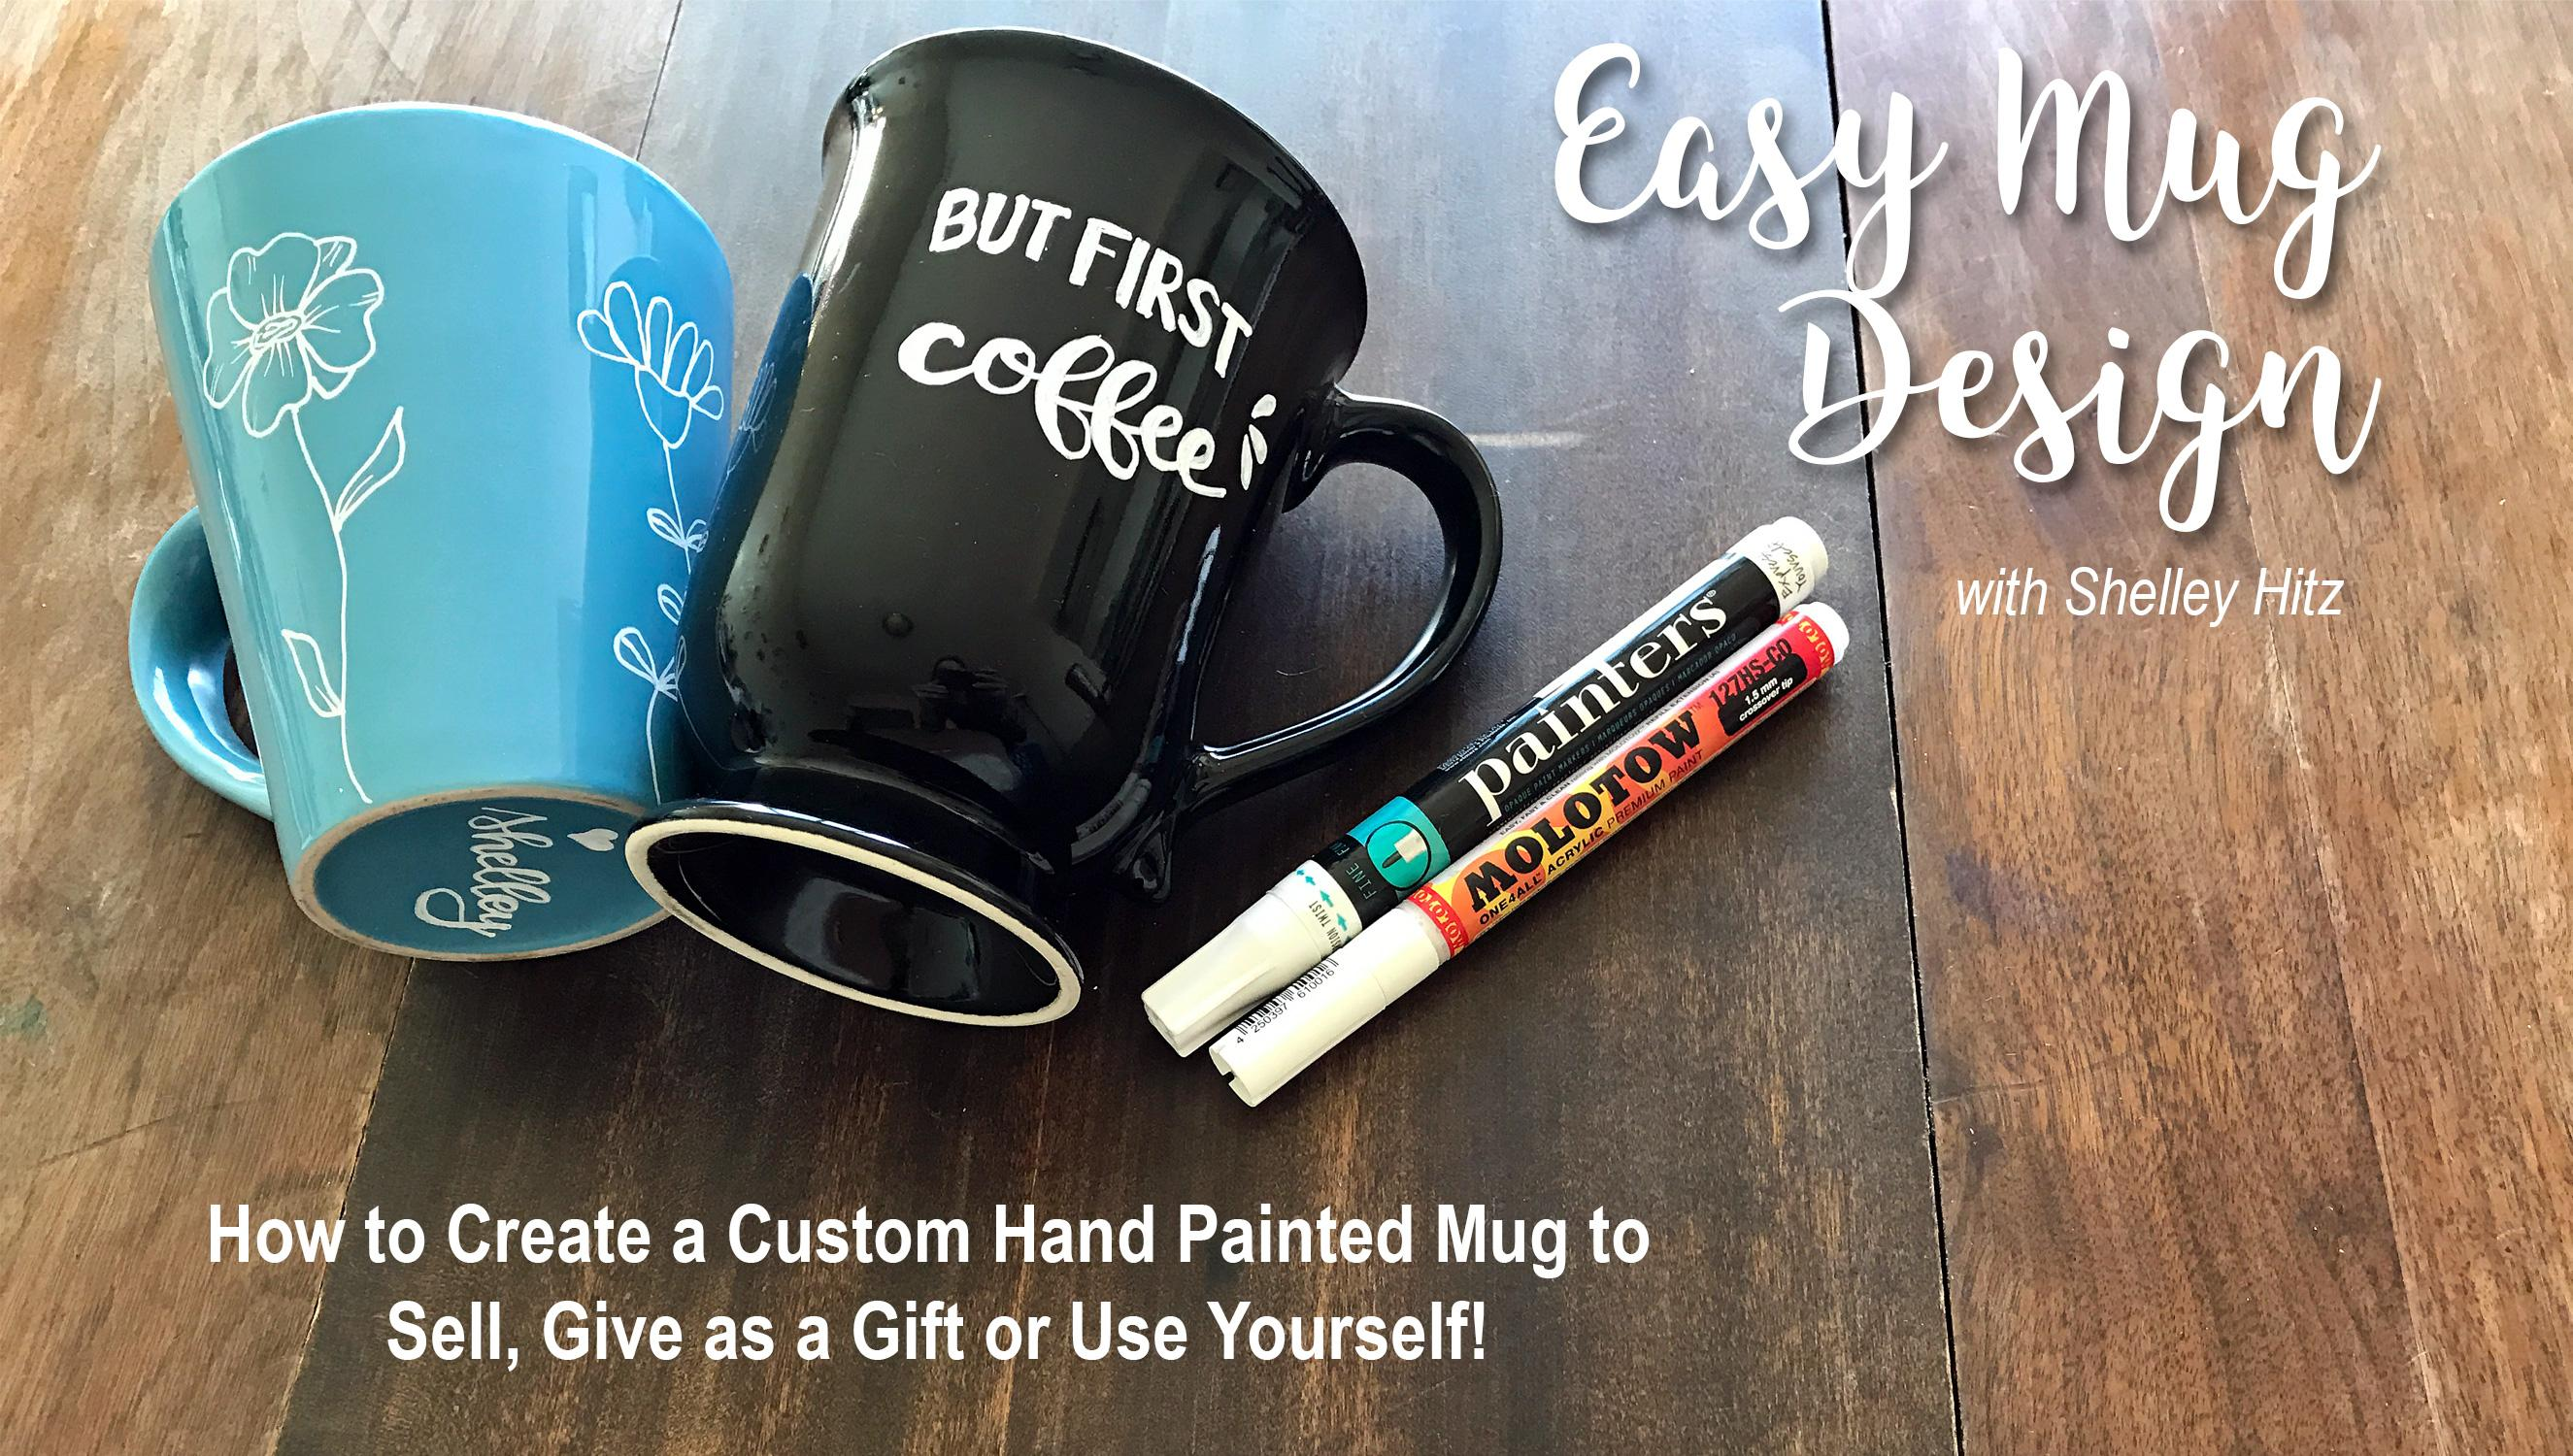 Easy mug design how to create a custom hand painted mug to sell have you ever wanted to create a custom one of a kind hand painted mug but you dont know where to start and arent sure which steps to take solutioingenieria Image collections